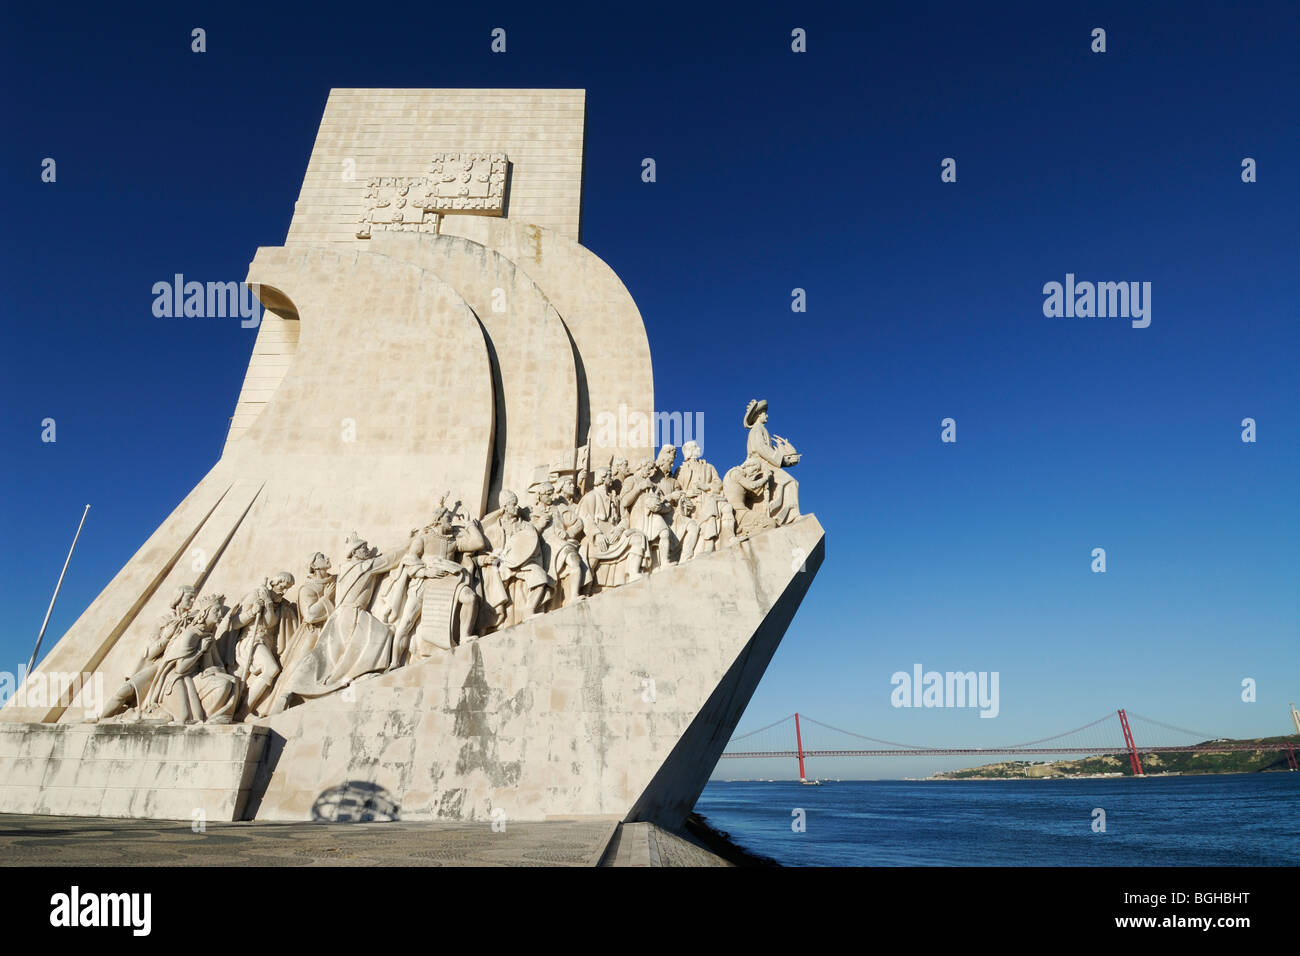 Lisbon. Portugal. Monument to the Discoveries Padrao dos Descobrimentos in Belem. - Stock Image